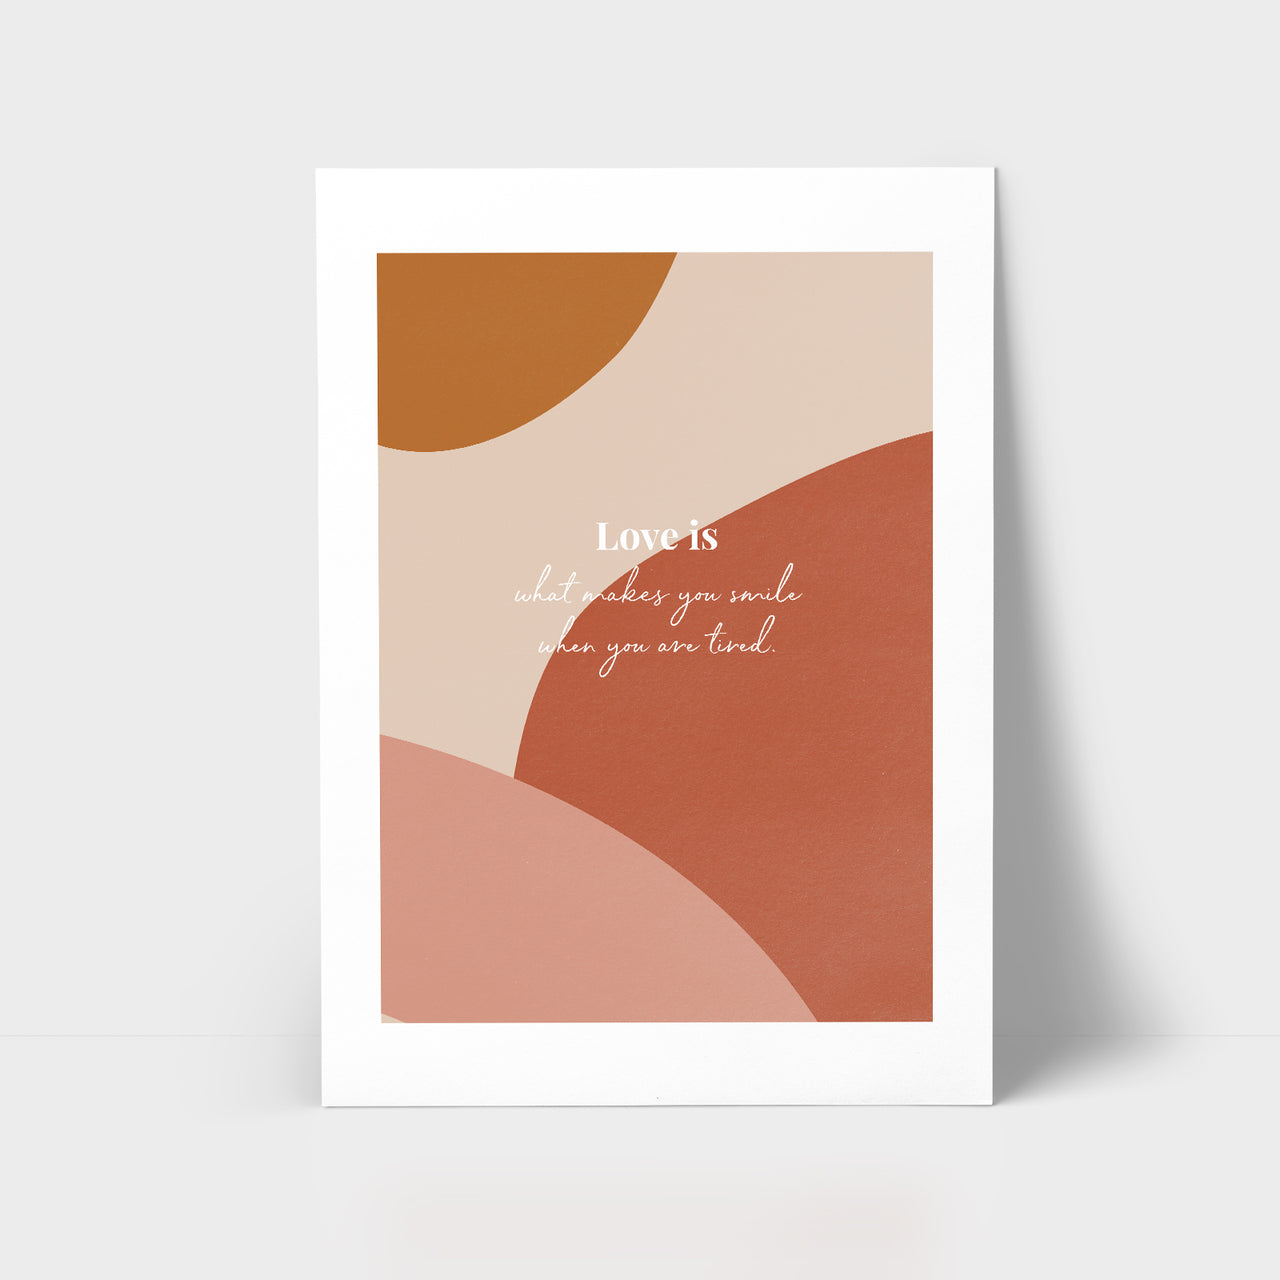 Love Series Print - Love Is...